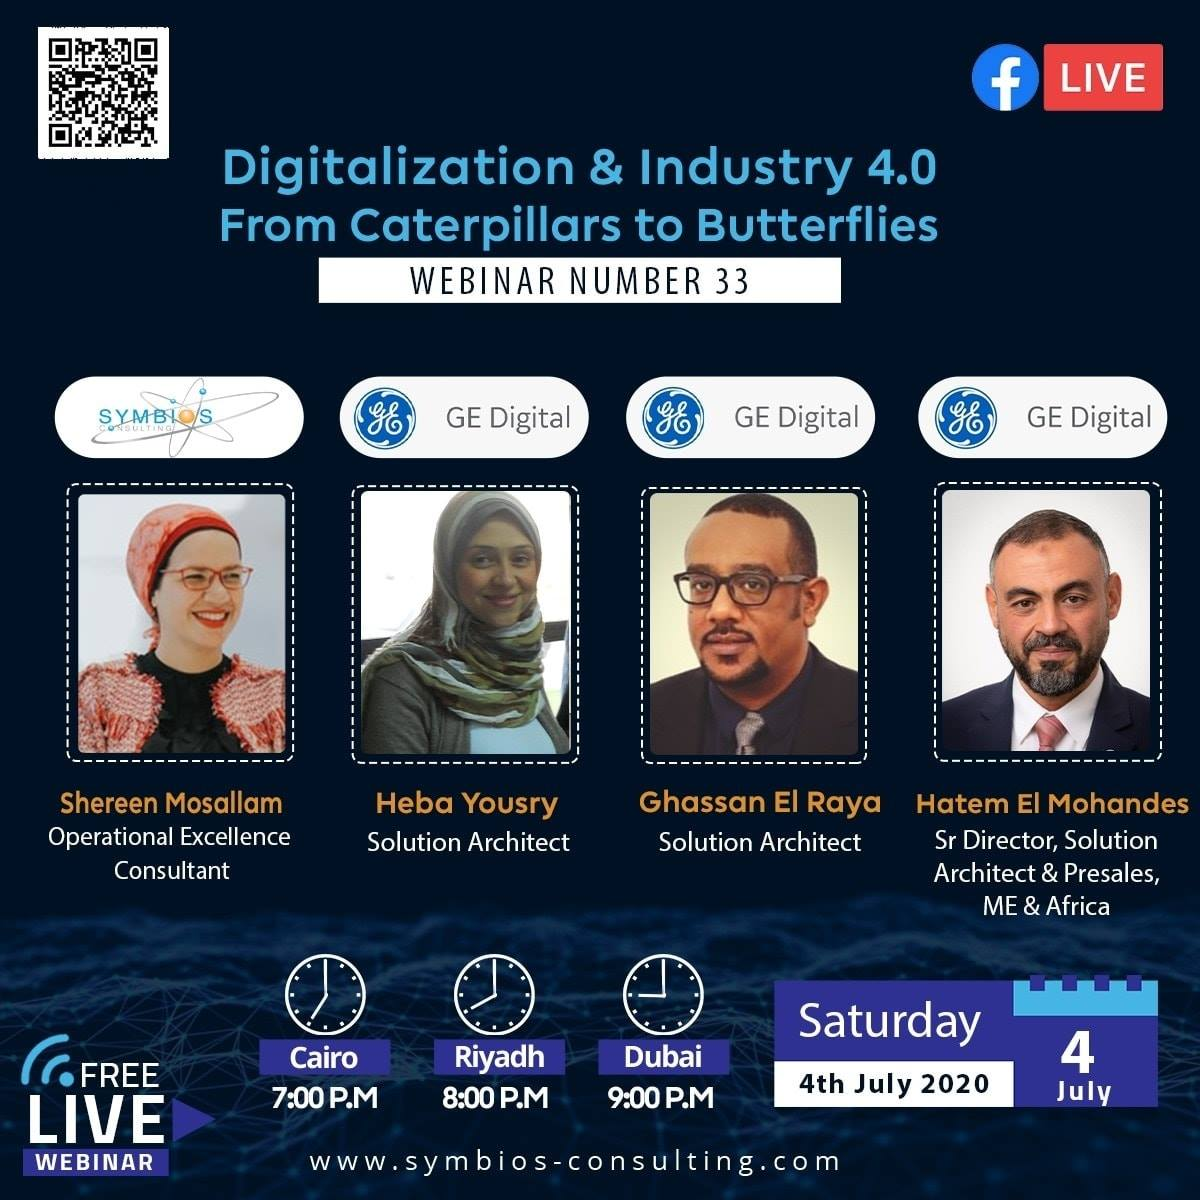 Digitalization & Industry 4 0: From Caterpillars to Butterflies